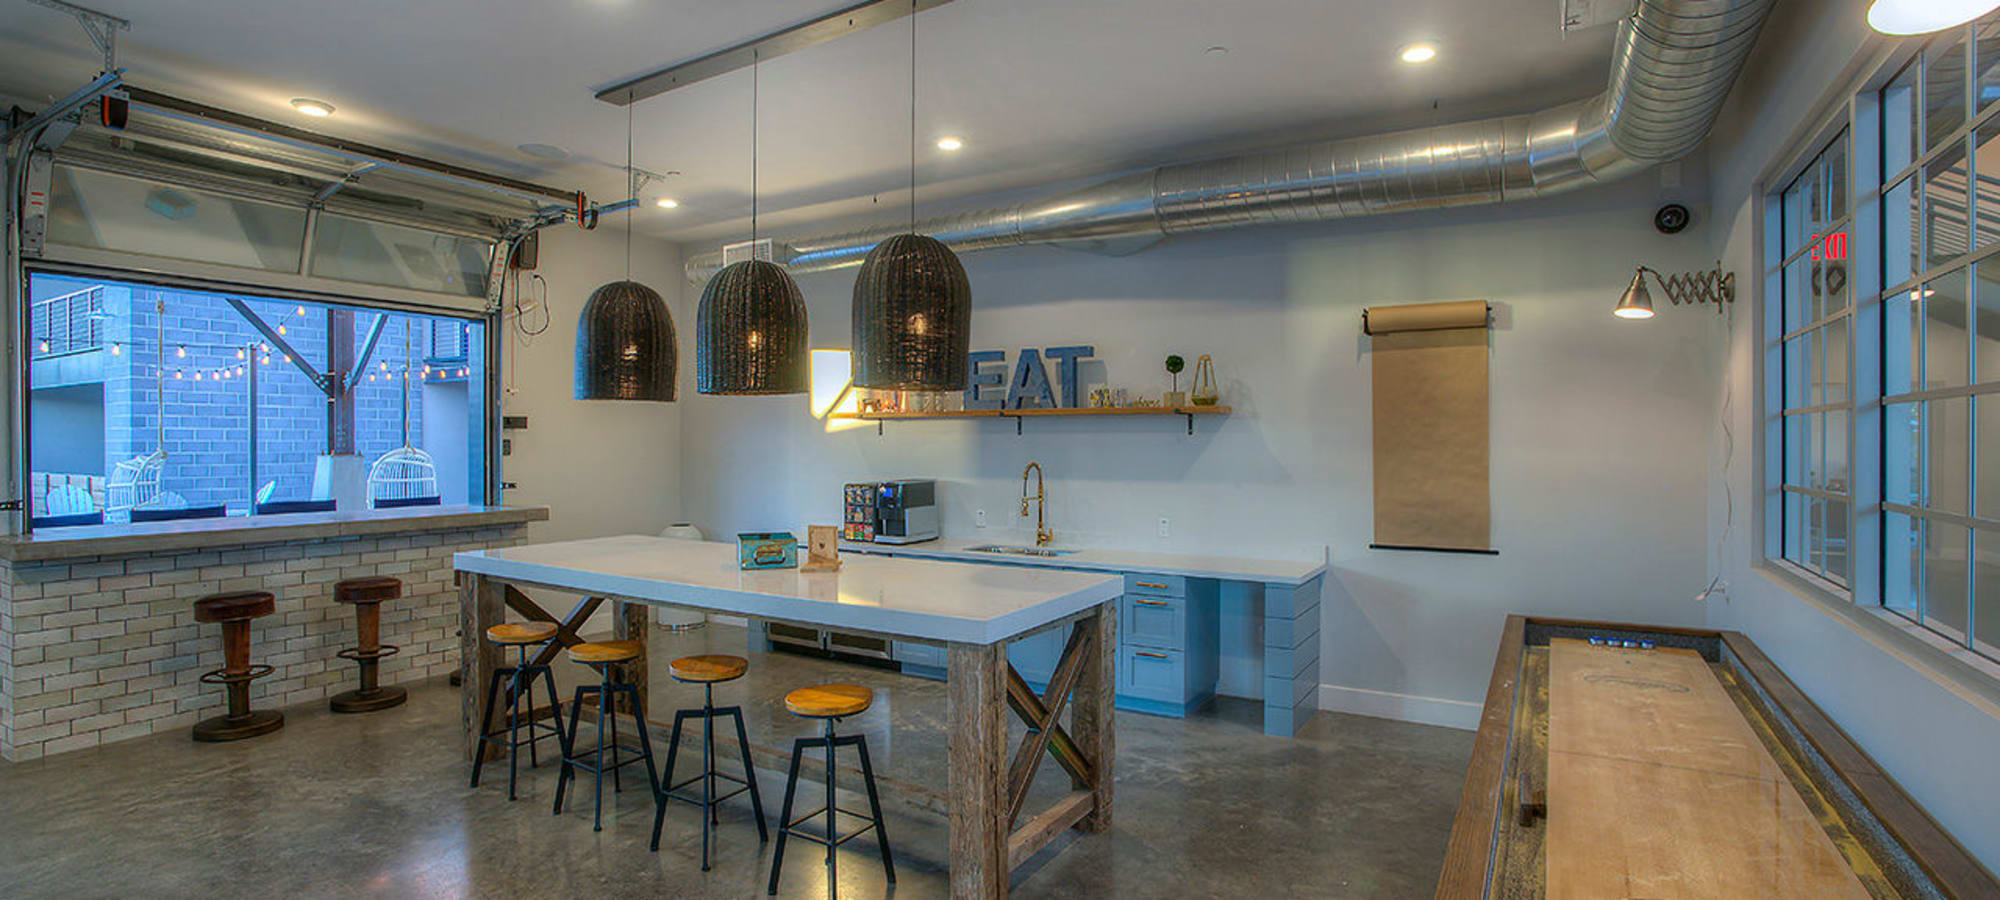 Fully equipped kitchen for resident use in the clubhouse at District Lofts in Gilbert, Arizona